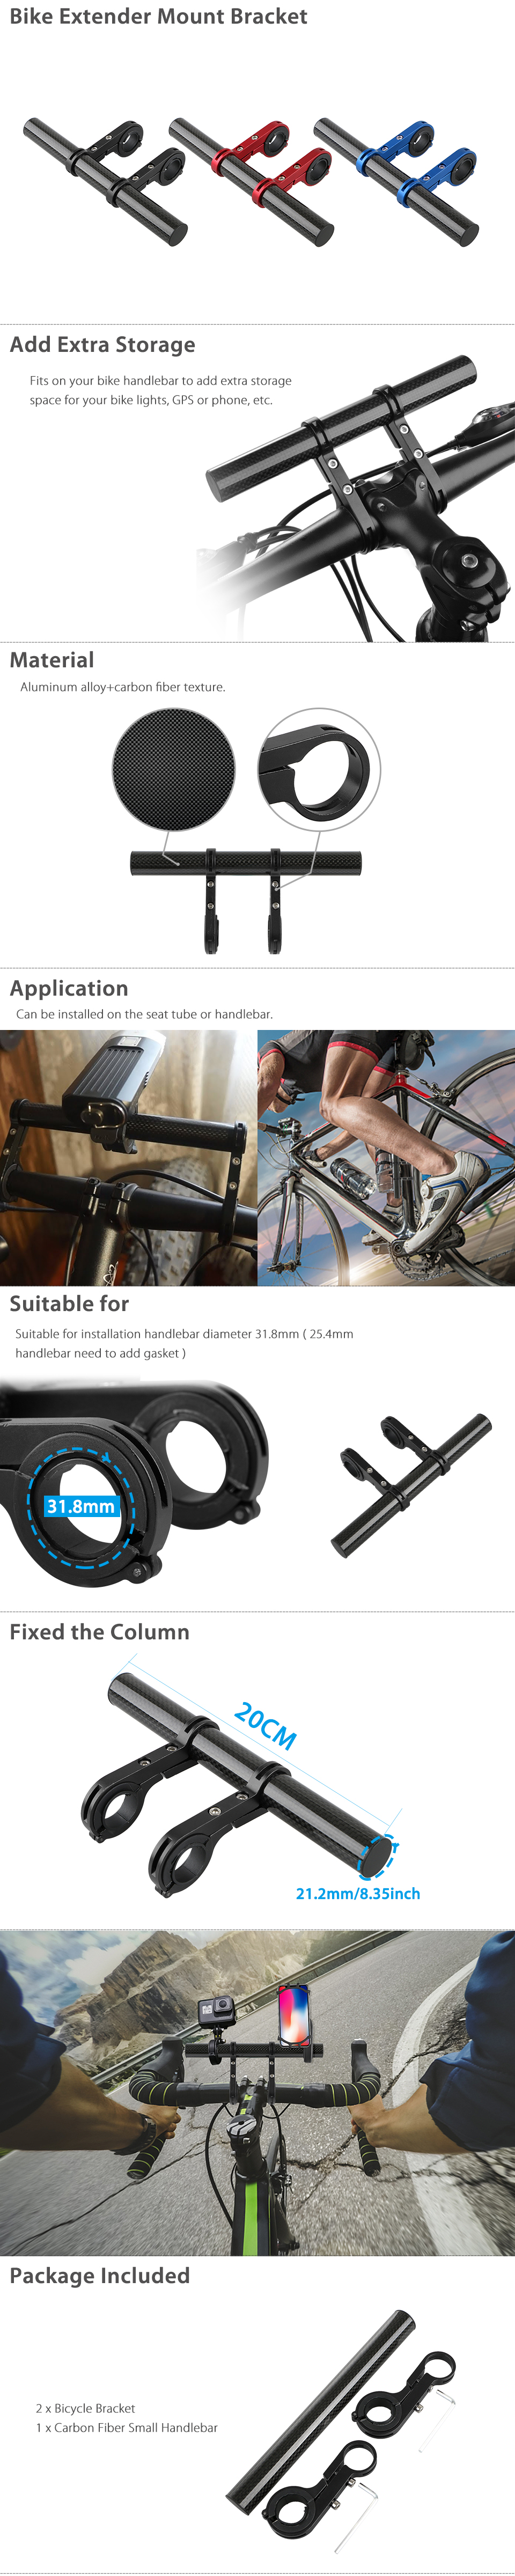 MTB Bike Flashlight Holder Handle Bar Bicycle Accessories Extender Mount Bracket